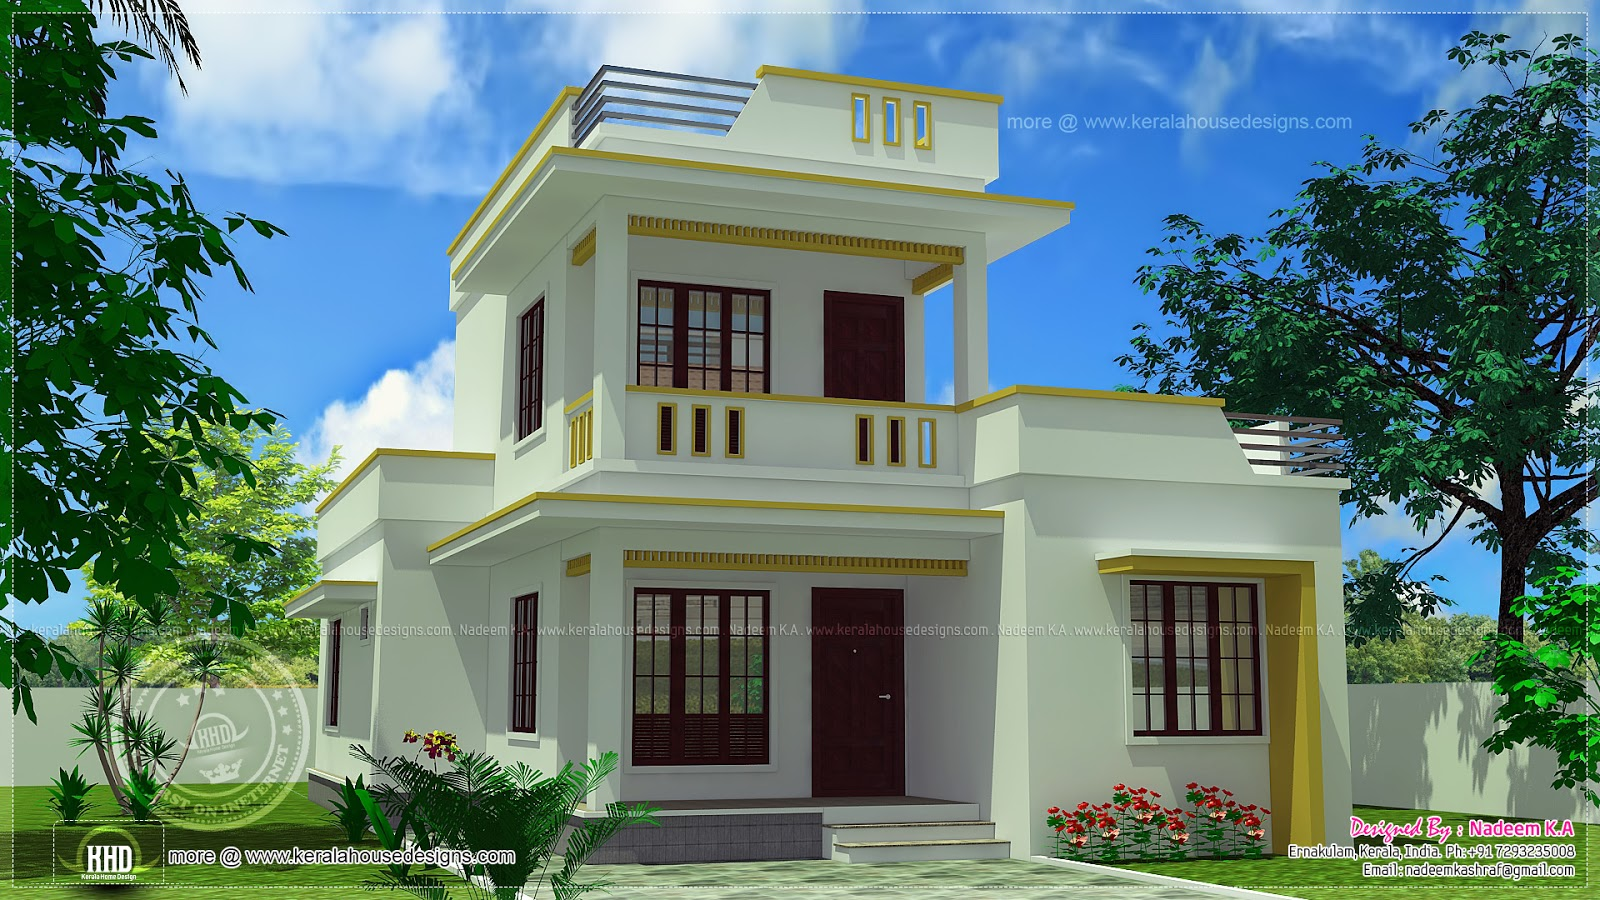 August 2013 kerala home design and floor plans Easy home design ideas